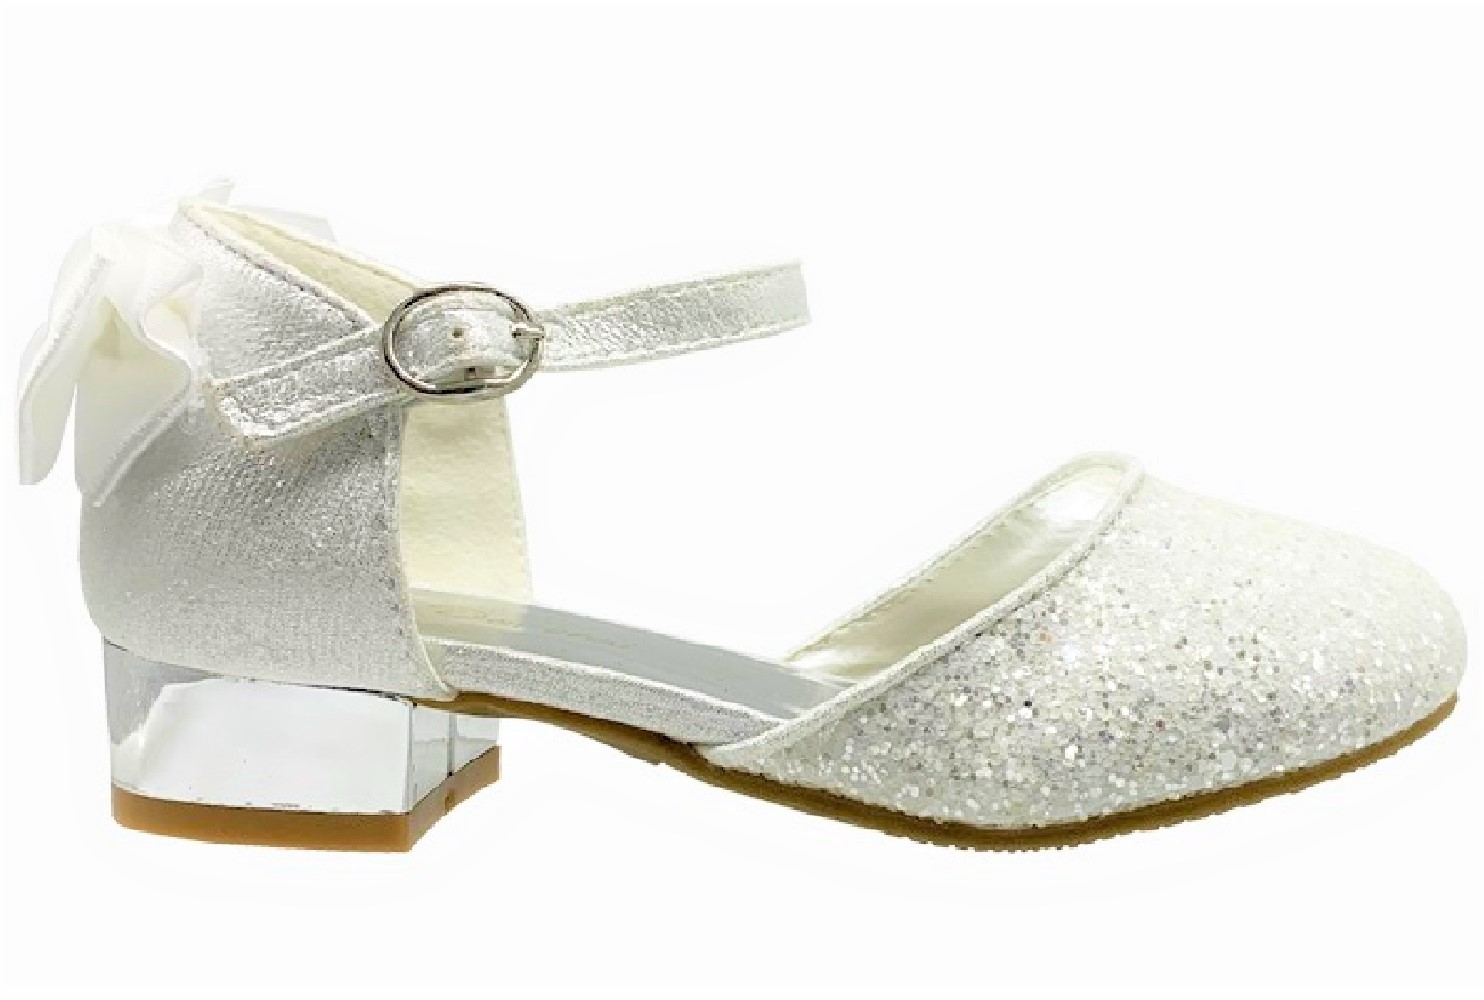 CHILDRENS KIDS BABY GIRLS LOW HEEL GLITTER BOW SHINY PARTY SHOES SANDALS SIZES